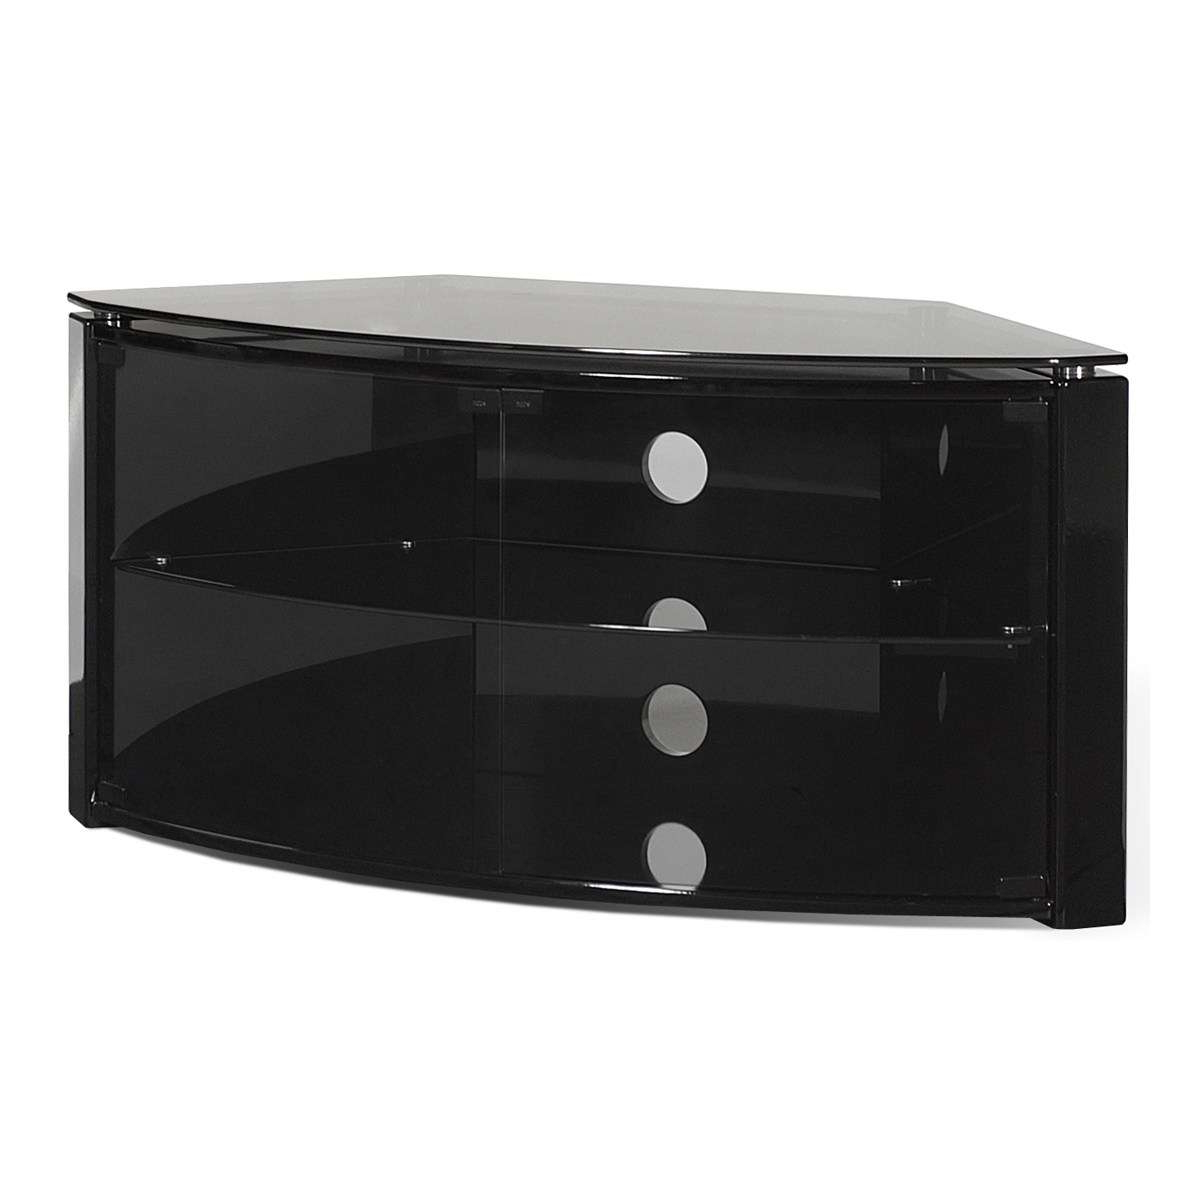 "Tech Link B6b Bench Corner Plus Tv Stand For 55"" Tv – Black (View 2 of 20)"